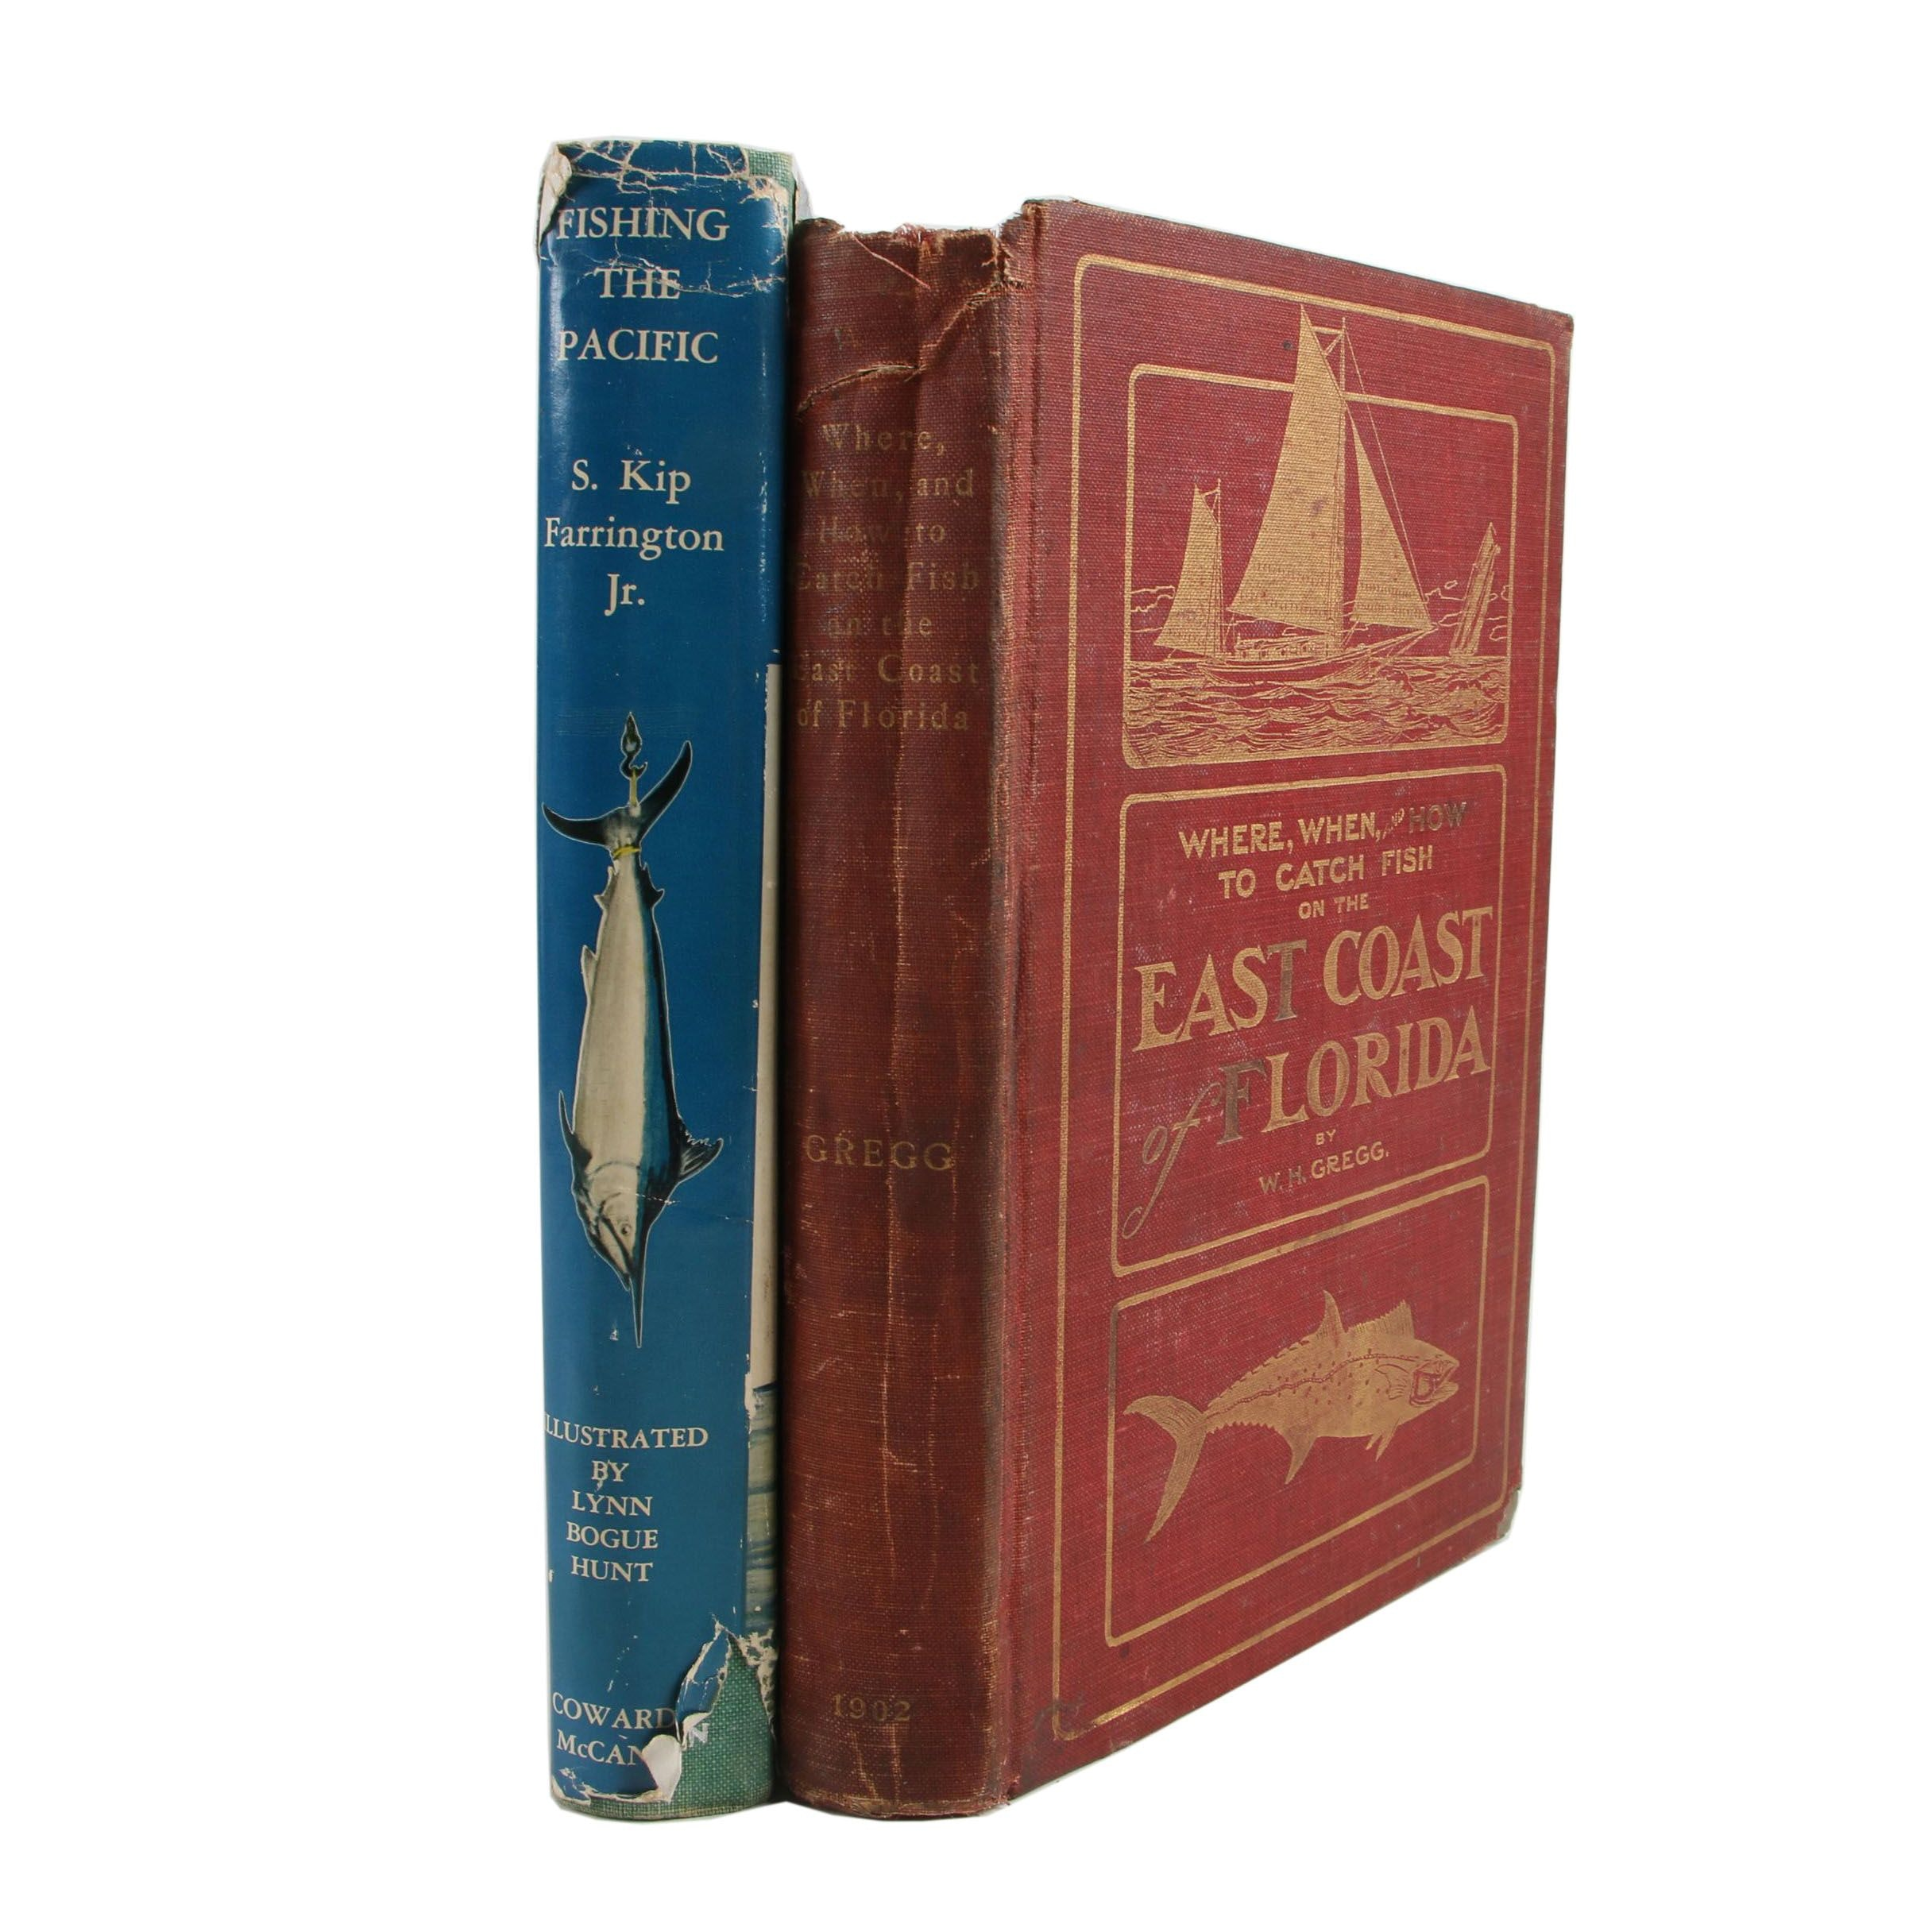 """Game Fishing Books featuring """"Fishing the Pacific"""" by S. Kip Farrington, Jr."""